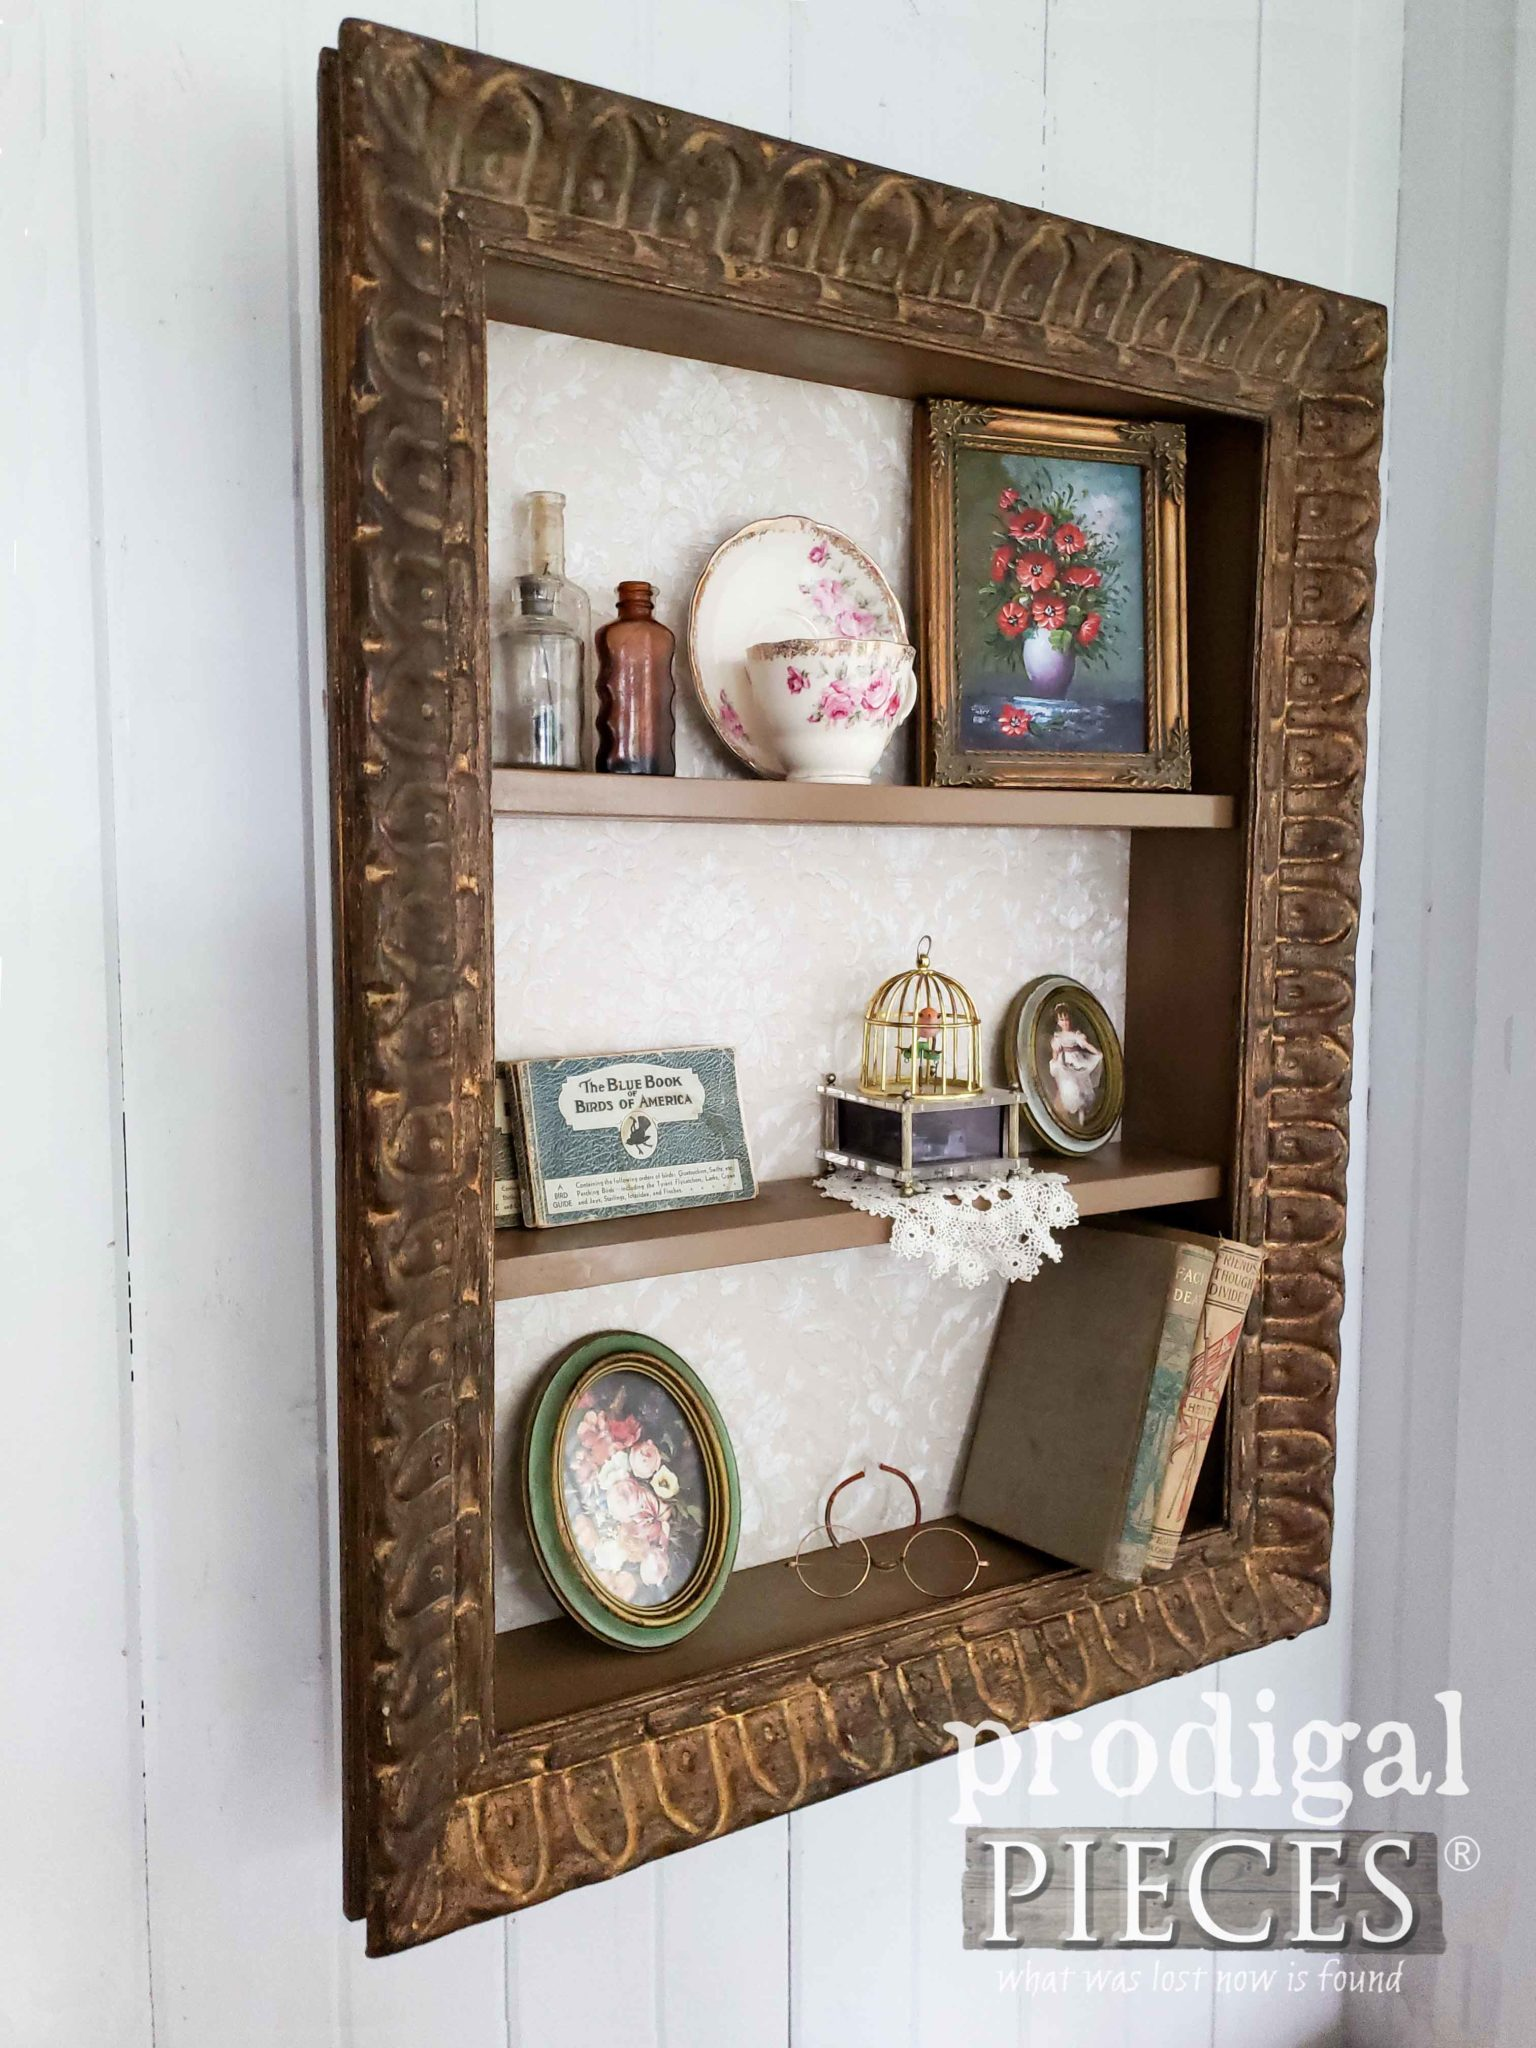 Ornate Picture Frame Shelf Made from Antique Picture Frame by Larissa of Prodigal Pieces | prodigalpieces.com